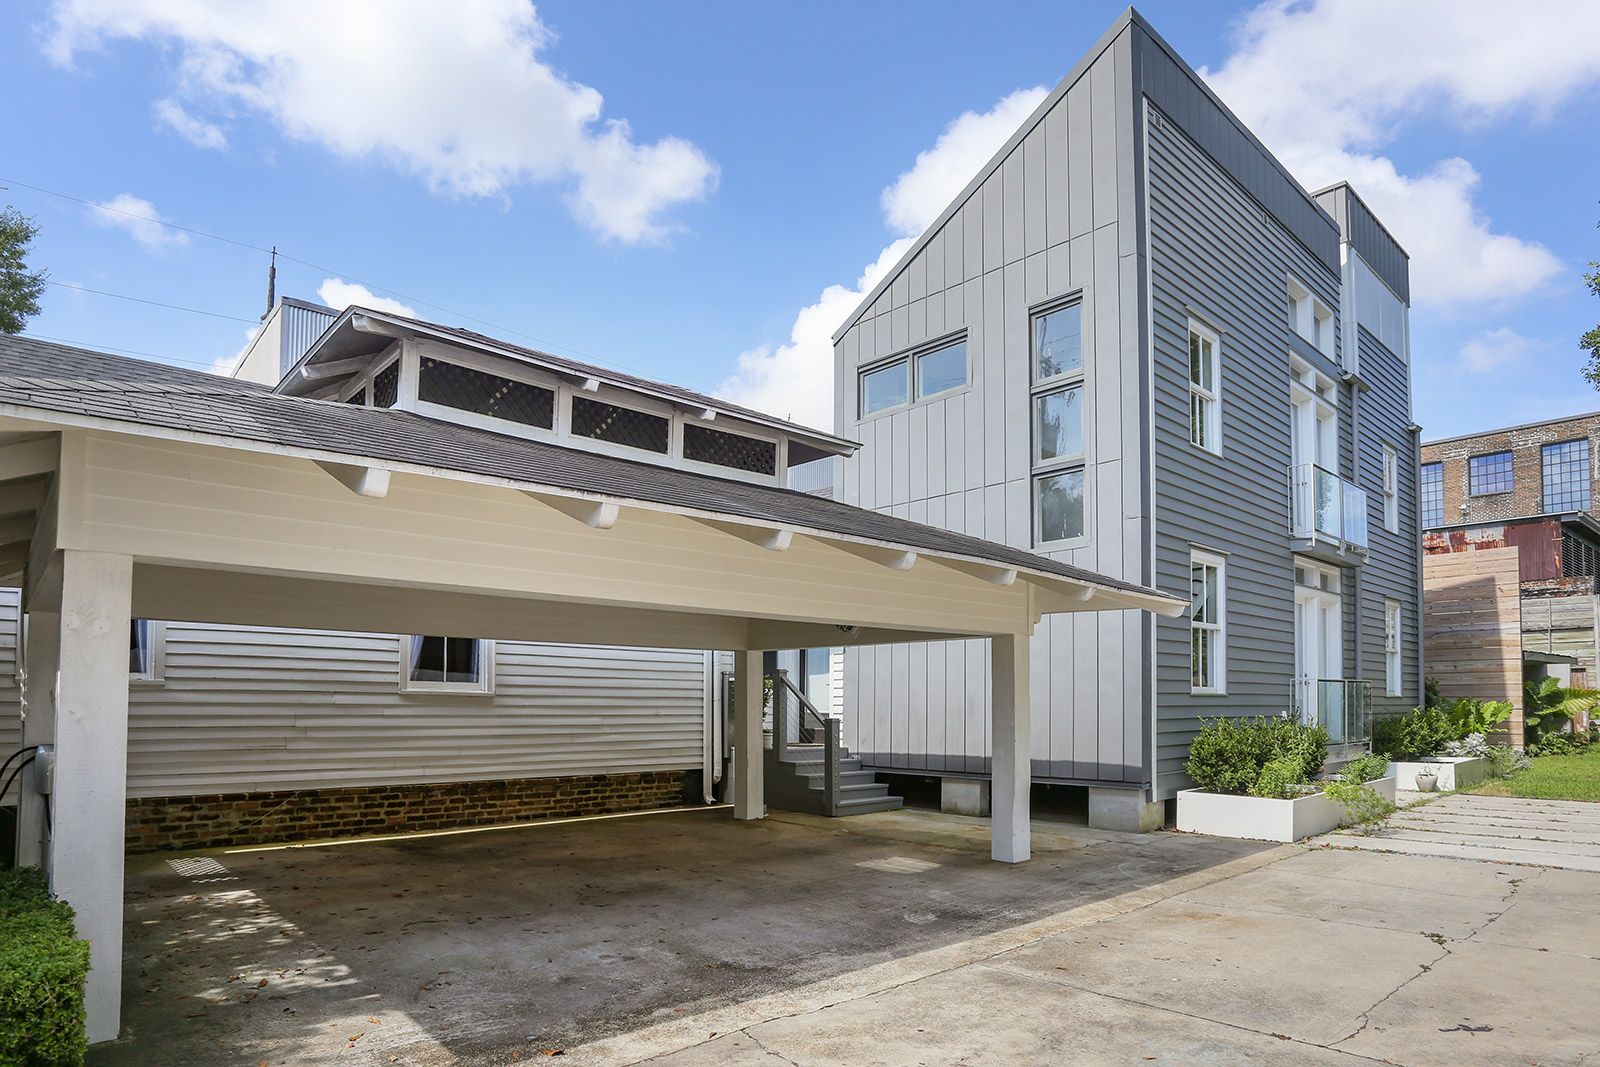 Bywater/Marigny, House, 2 beds, 2.5 baths, $7000 per month New Orleans Rental - devie image_28